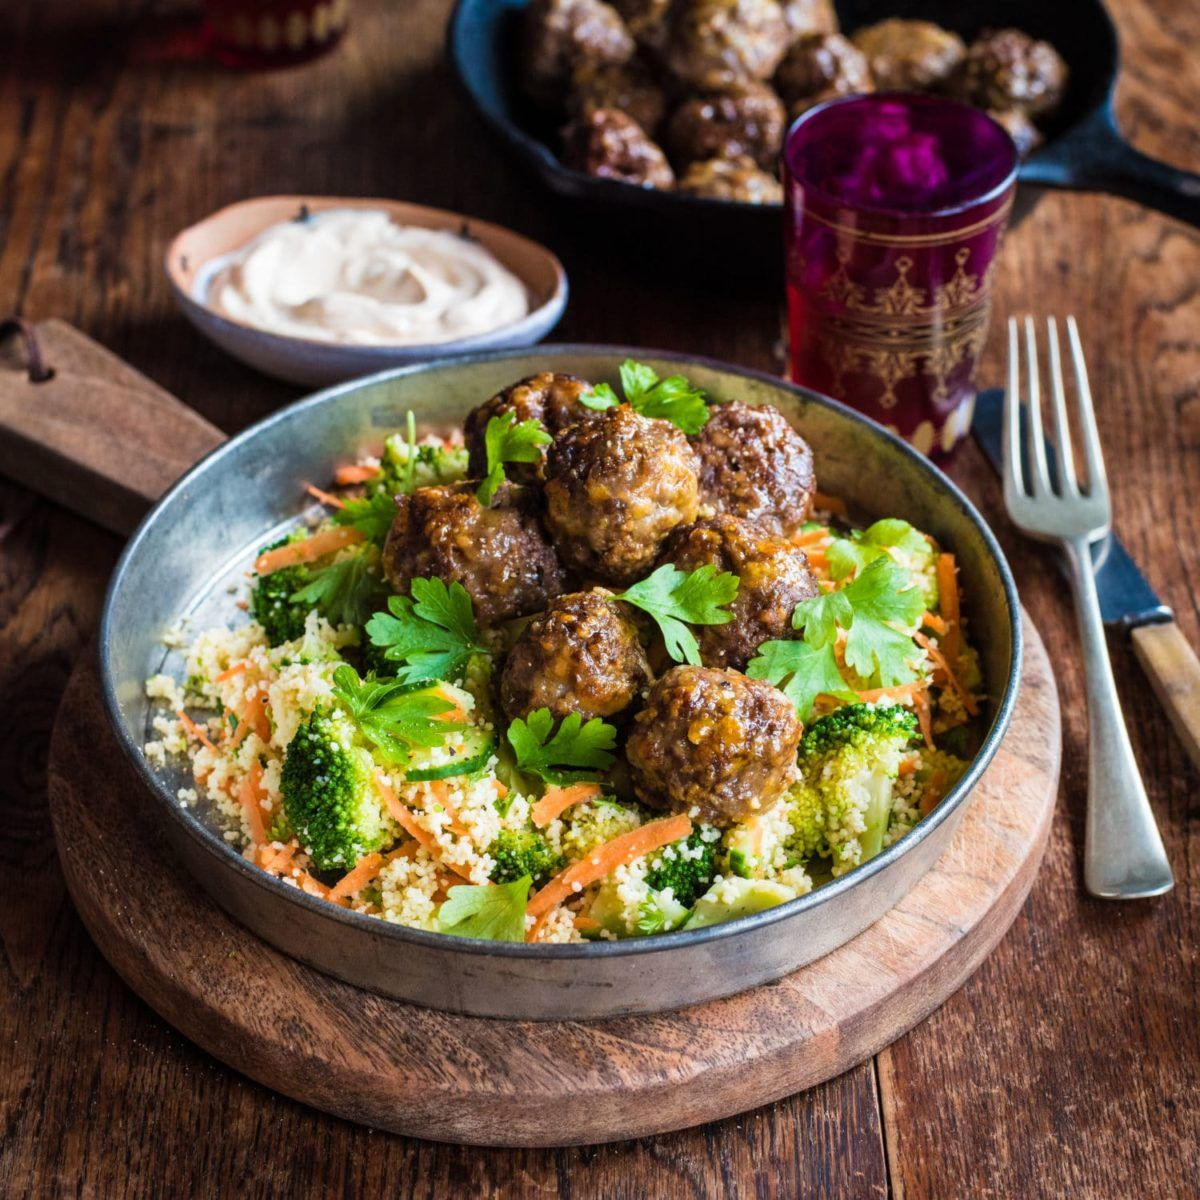 Moroccan Meatballs With Couscous Salad And Spiced Sour Cream